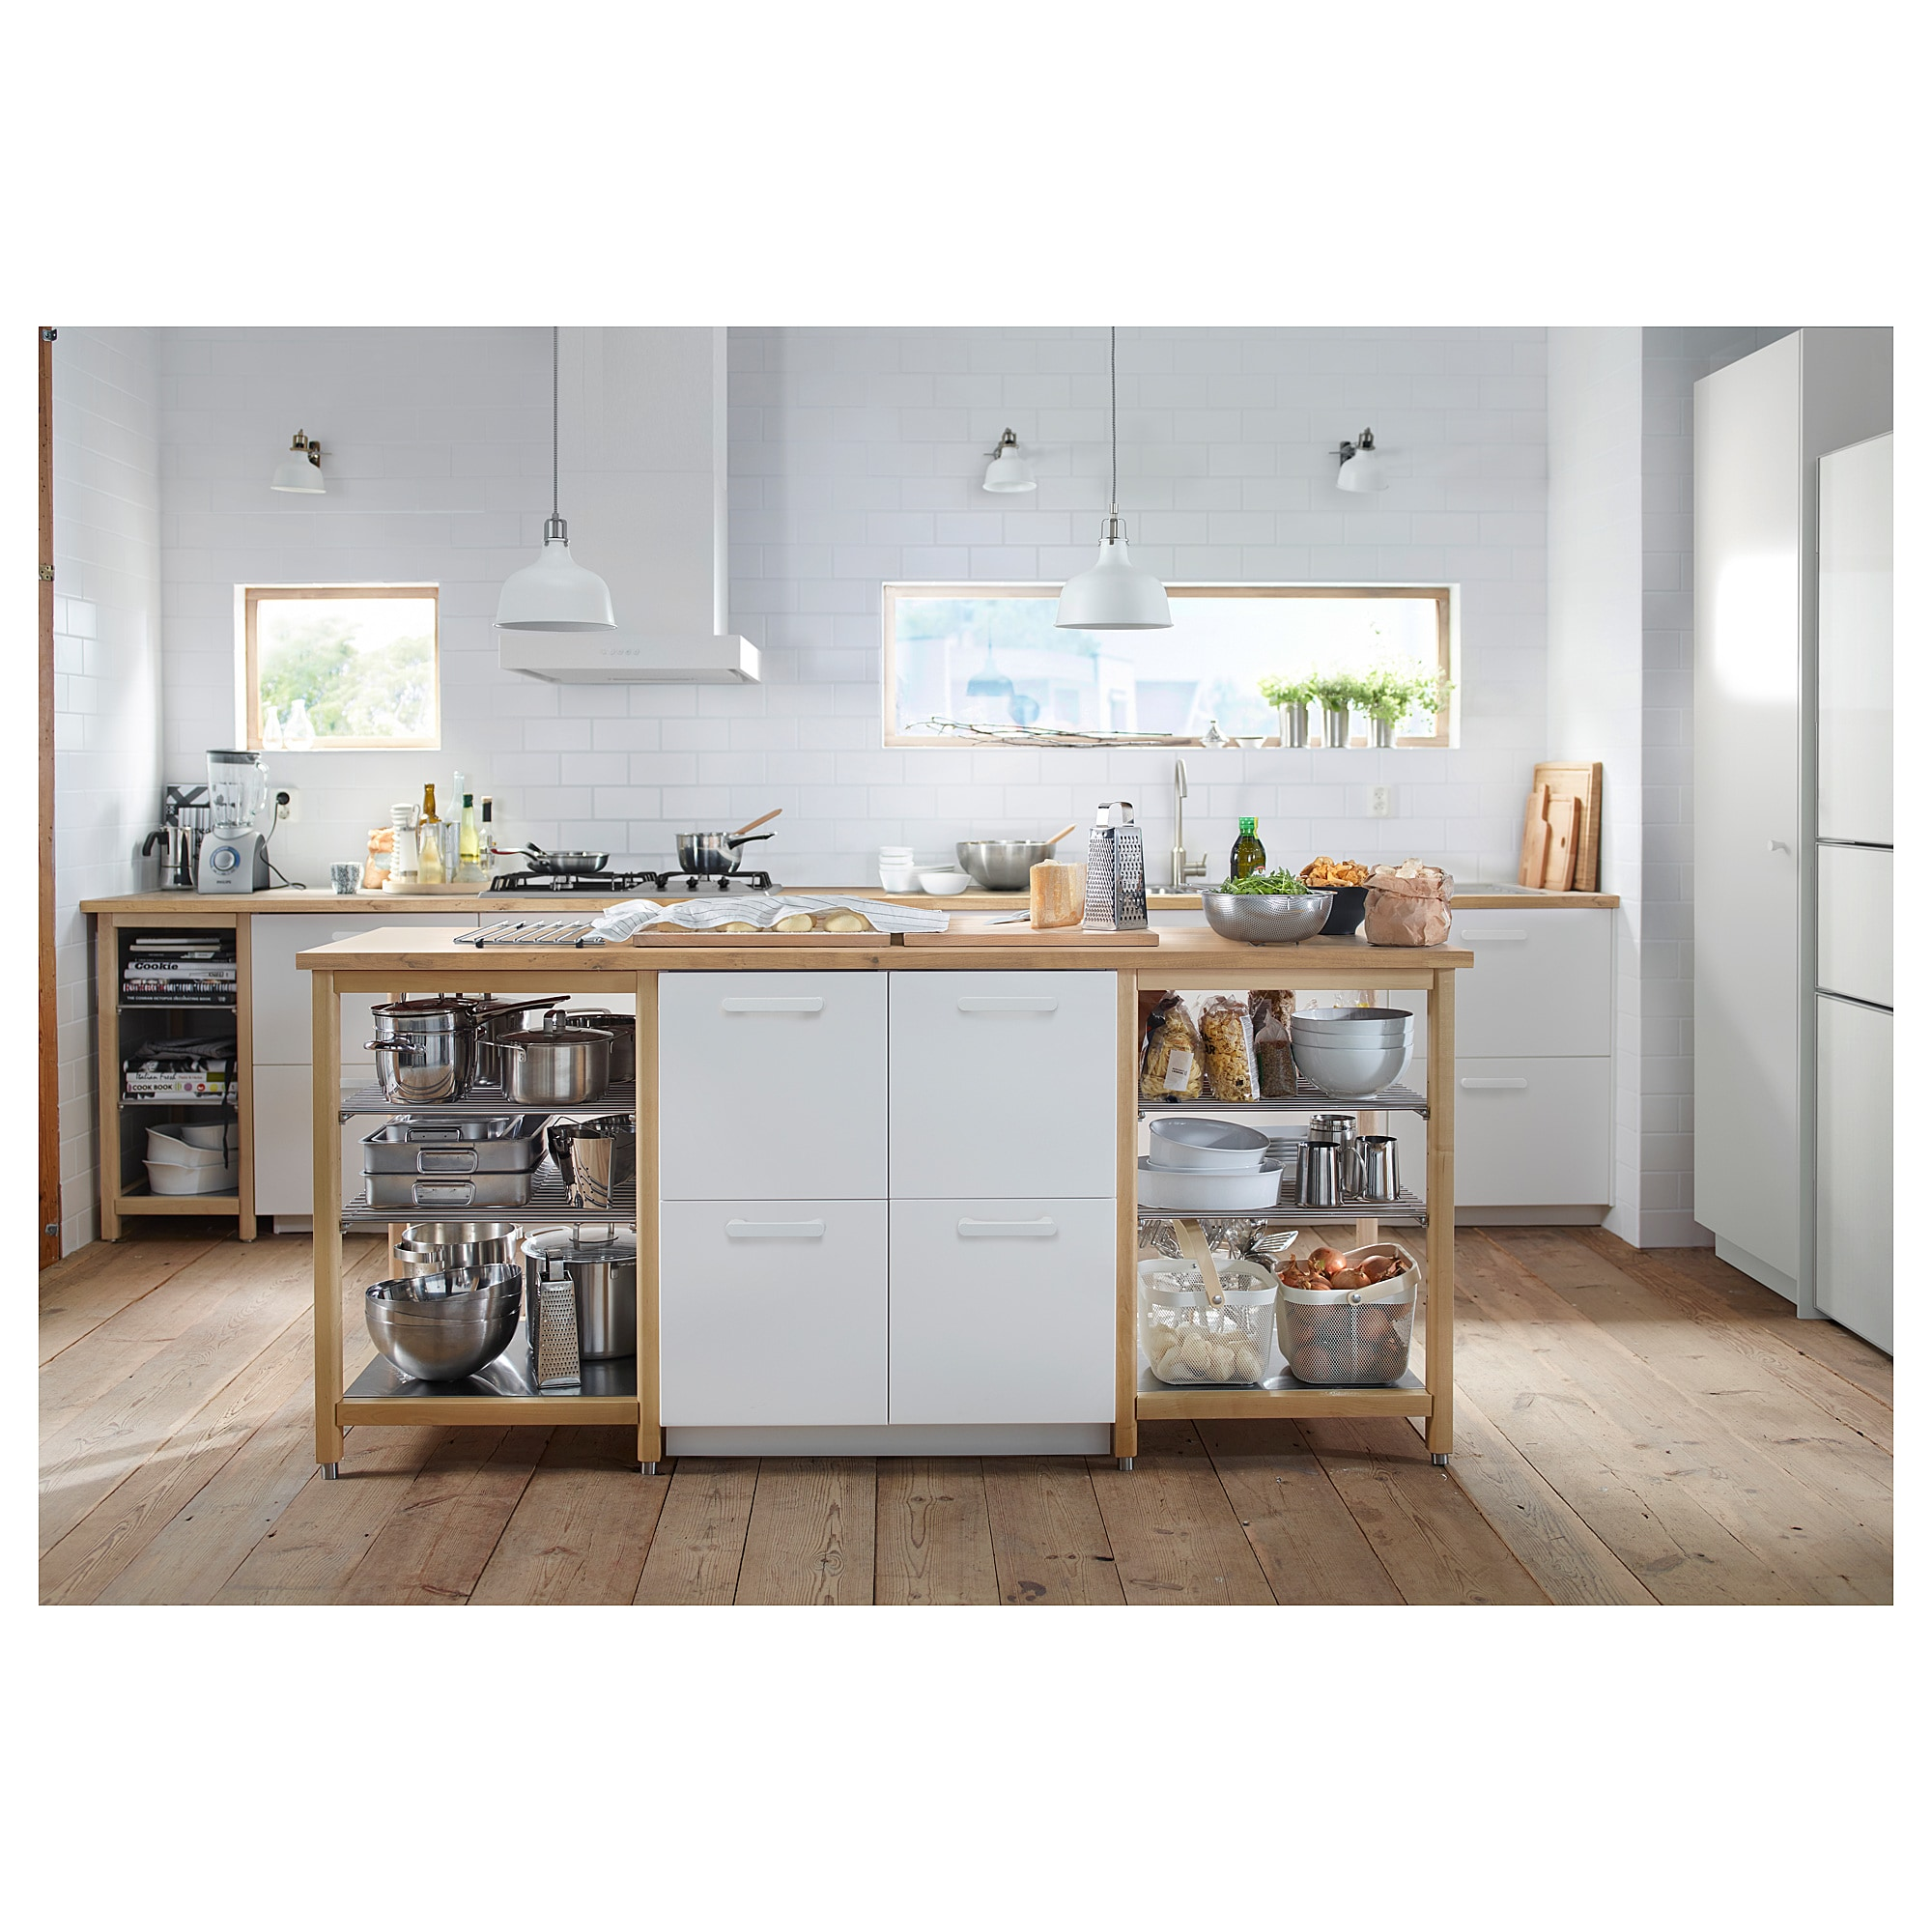 Karlby Countertop Birch Veneer Shop Here Ikea In 2020 Karlby Countertop Ikea Kitchen Island Countertops